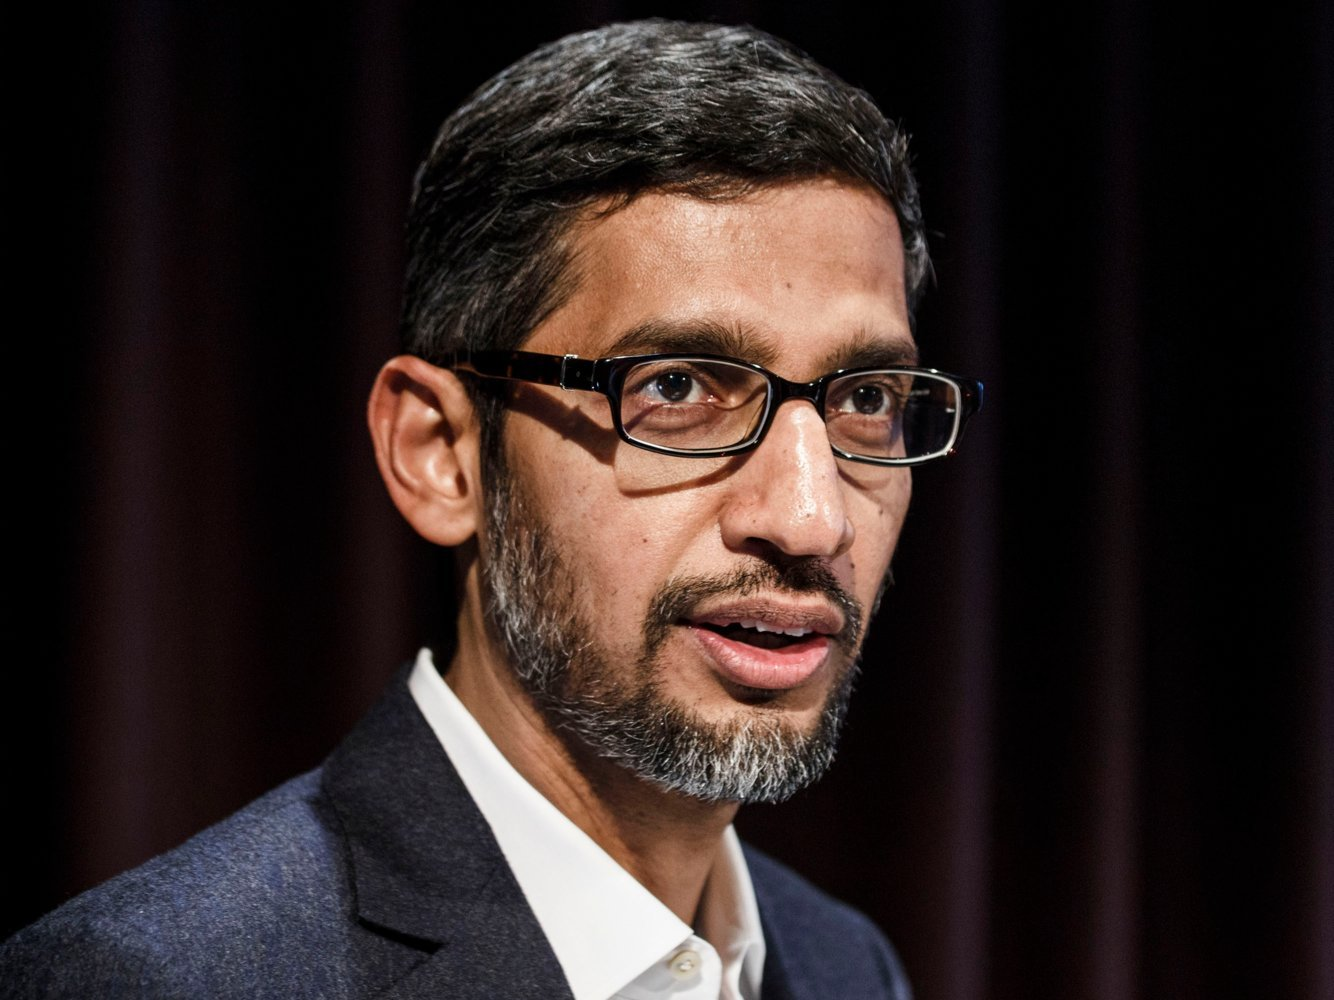 Google defended its ad business against accusations of antitrust concerns — but its competitors say the tech giant doesn't play fairly